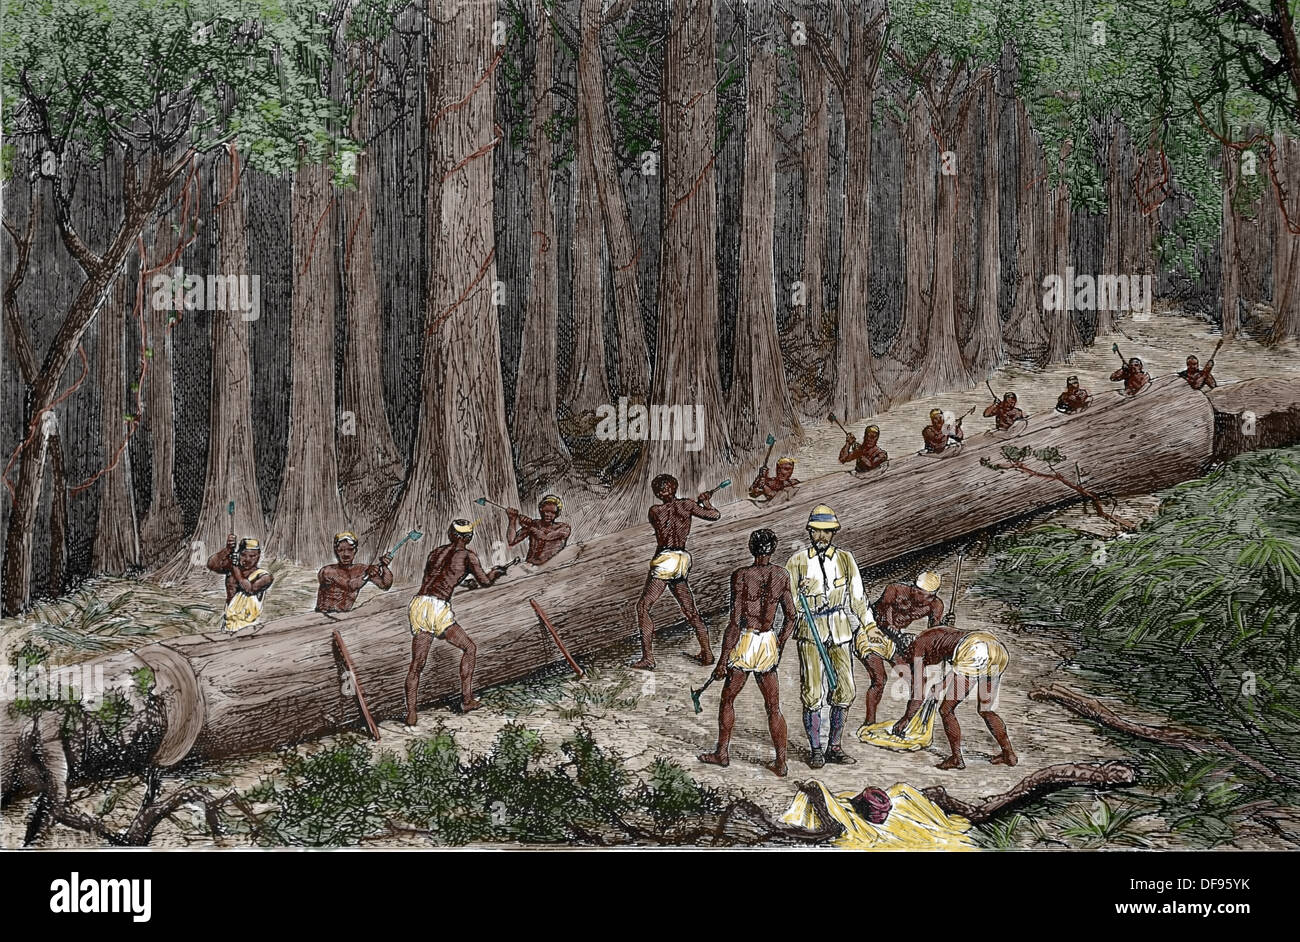 Africa. Stanley Expedition. Cutting Out the New 'Livingstone Canoe'. Colored engraving. - Stock Image